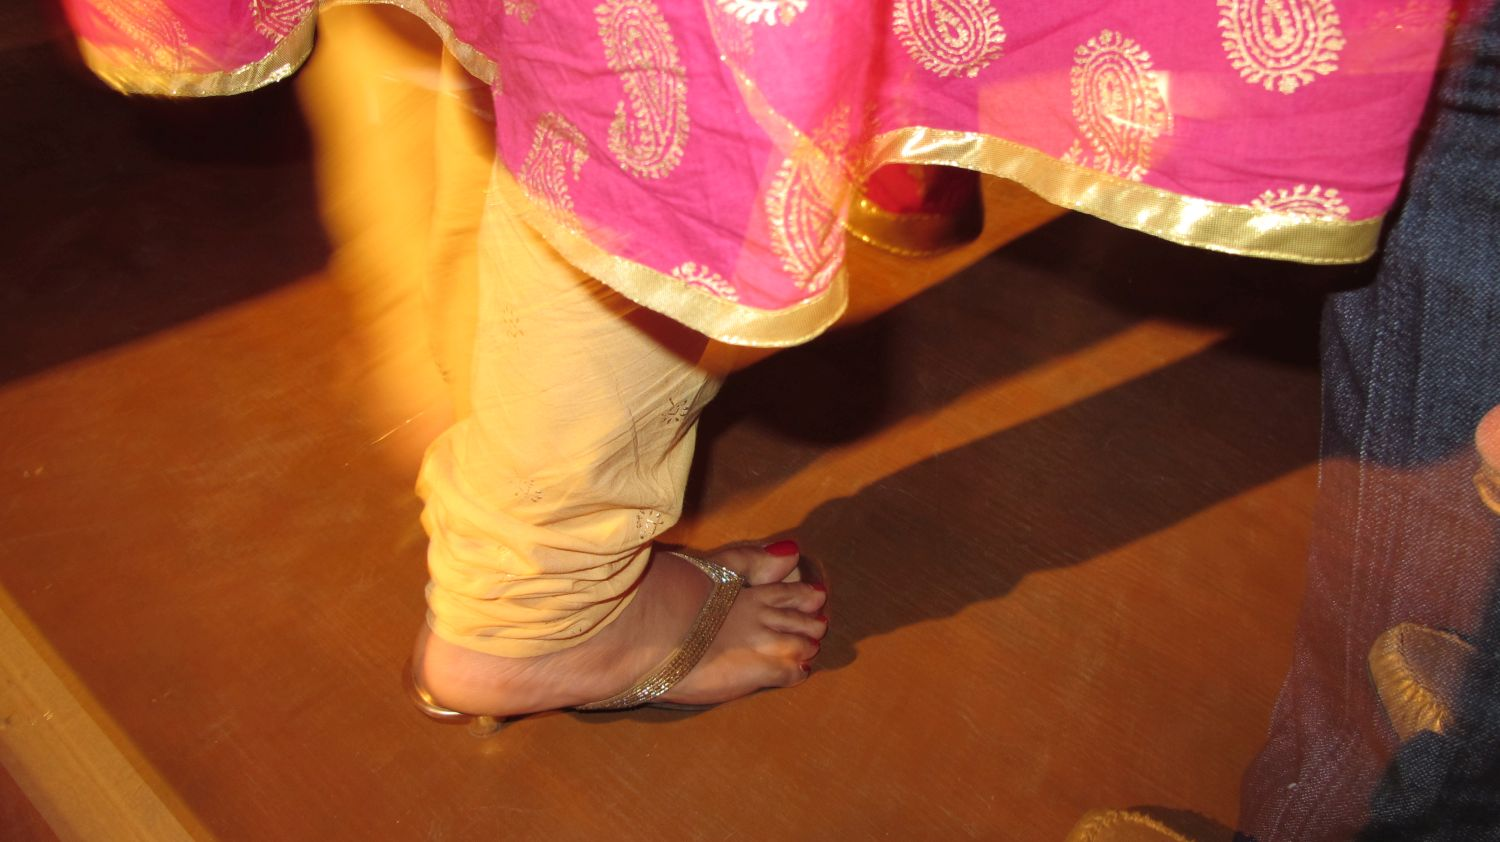 City palace of Jaipur | Royal family | Private party | Princess feet | ©sandrine cohen